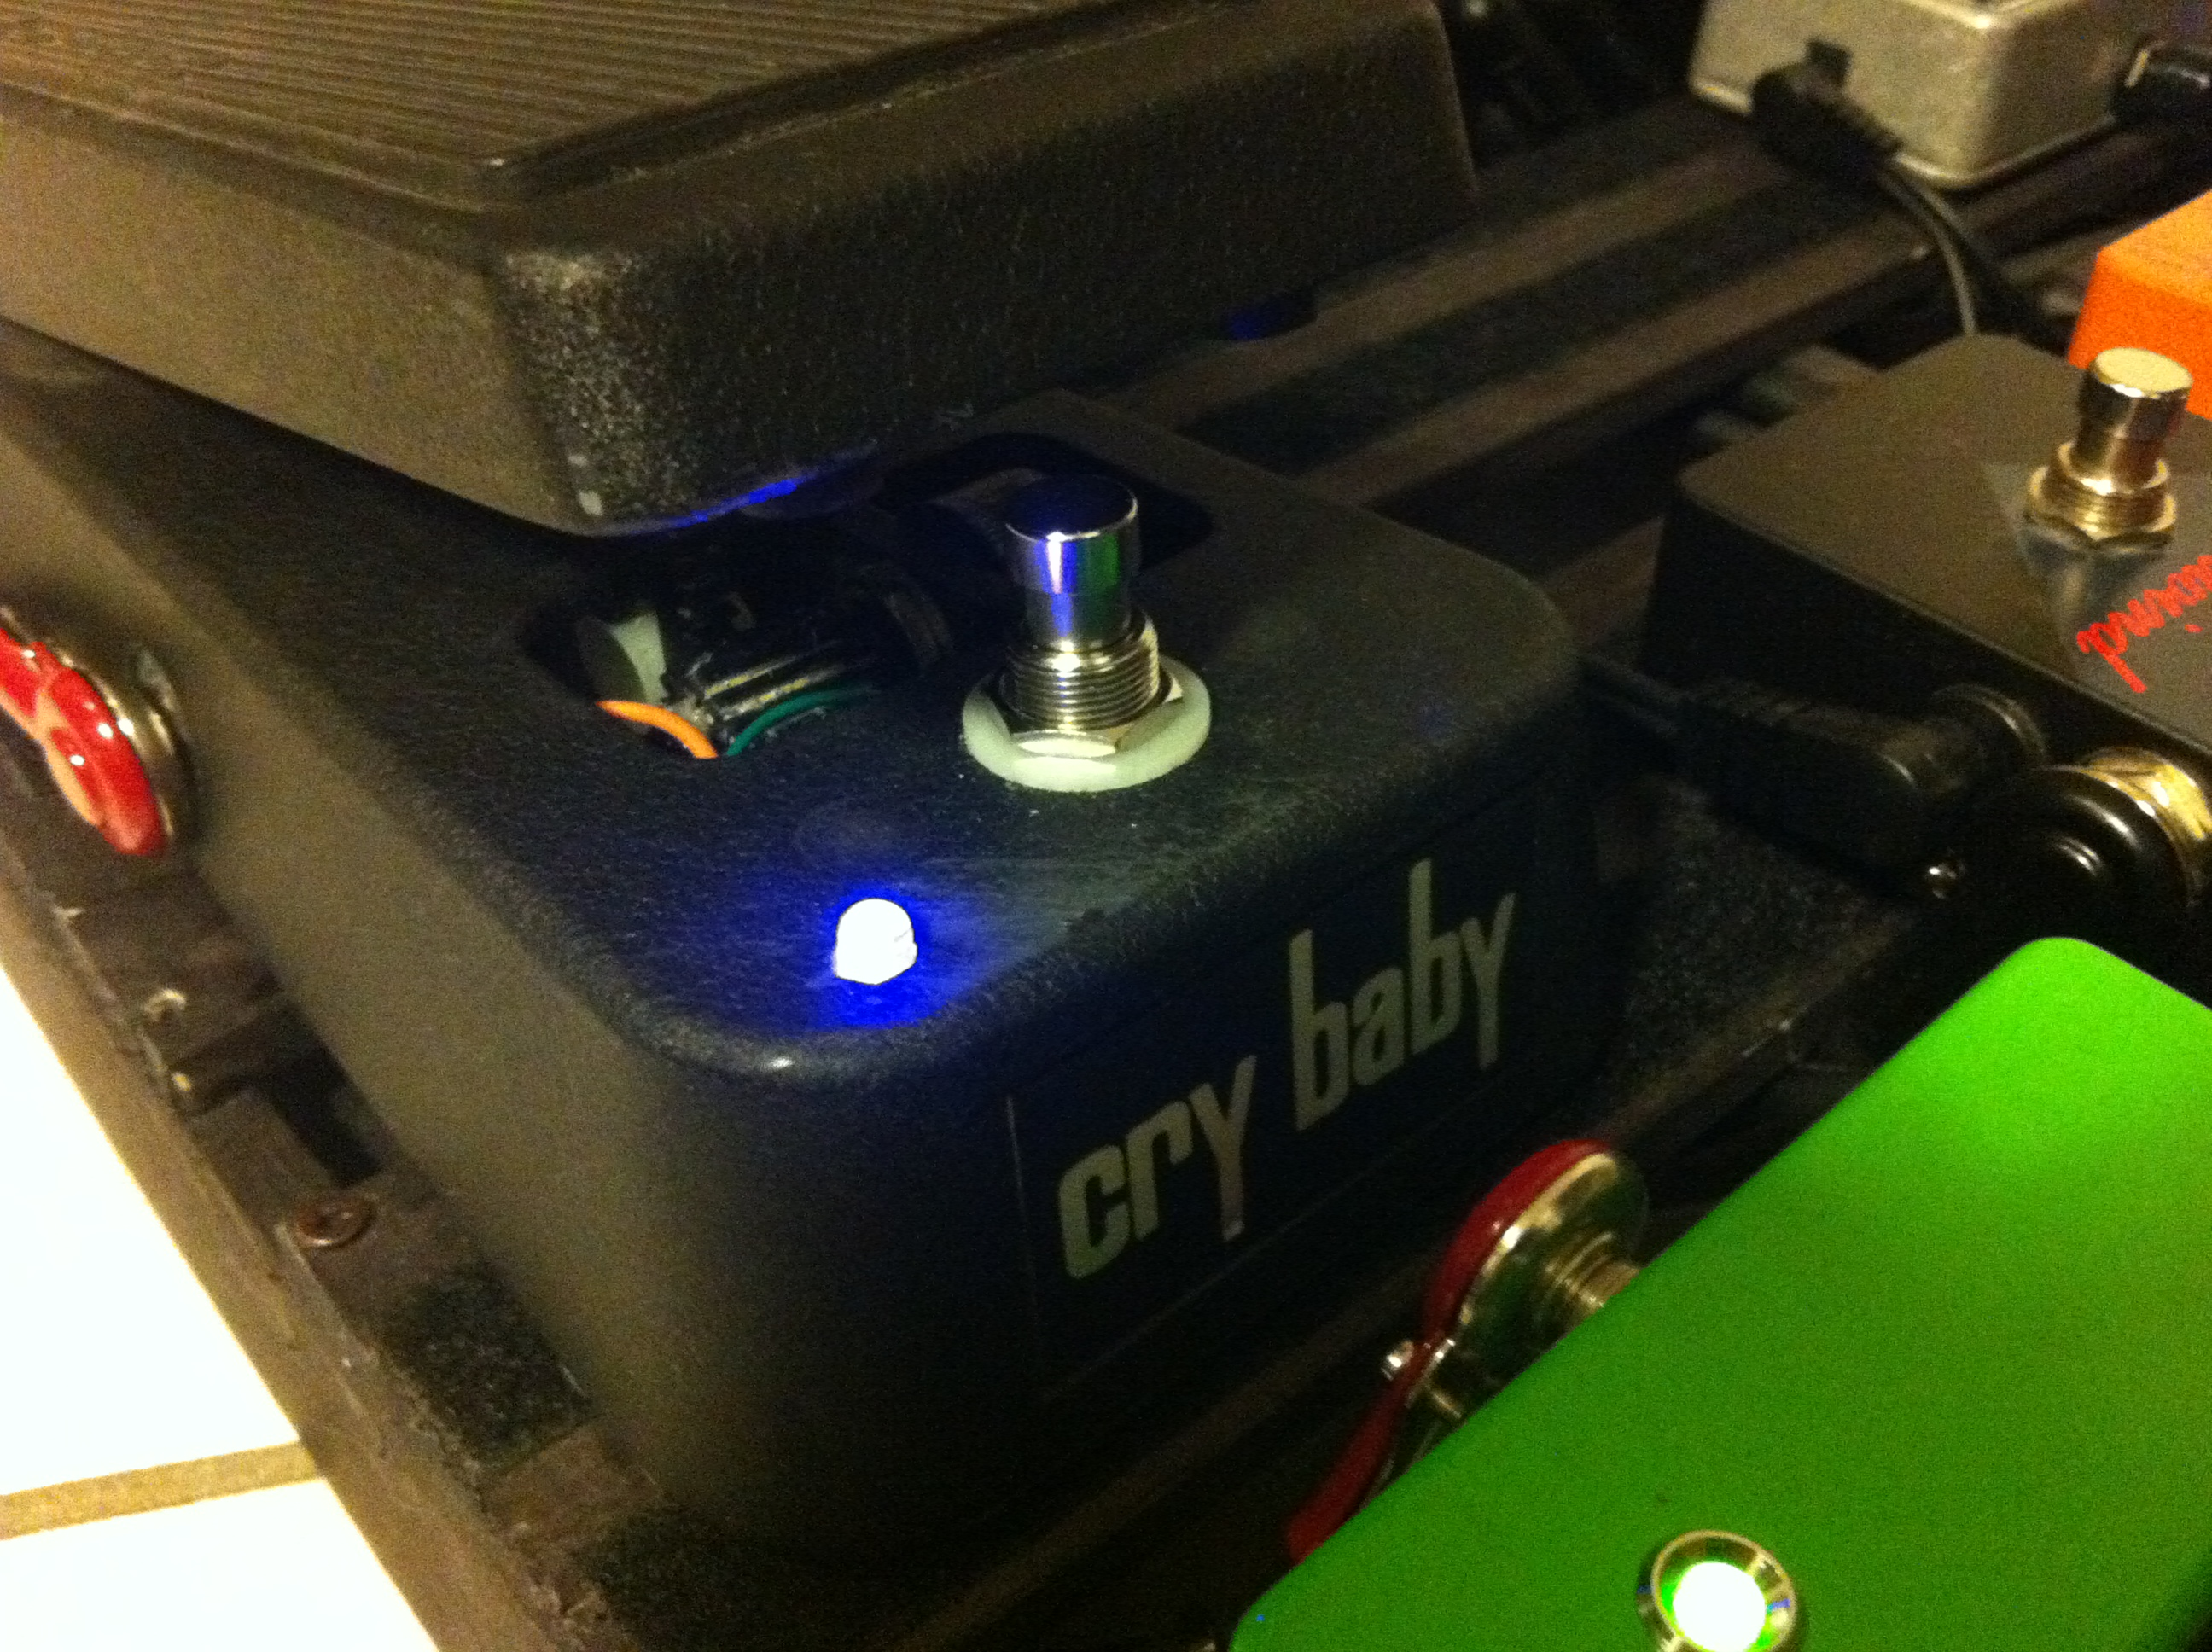 Convert Crybaby Wah Pedal To True Bypass Daniele Turani Wiring Diagram 3pdt With Led Installed Purple And Turned On